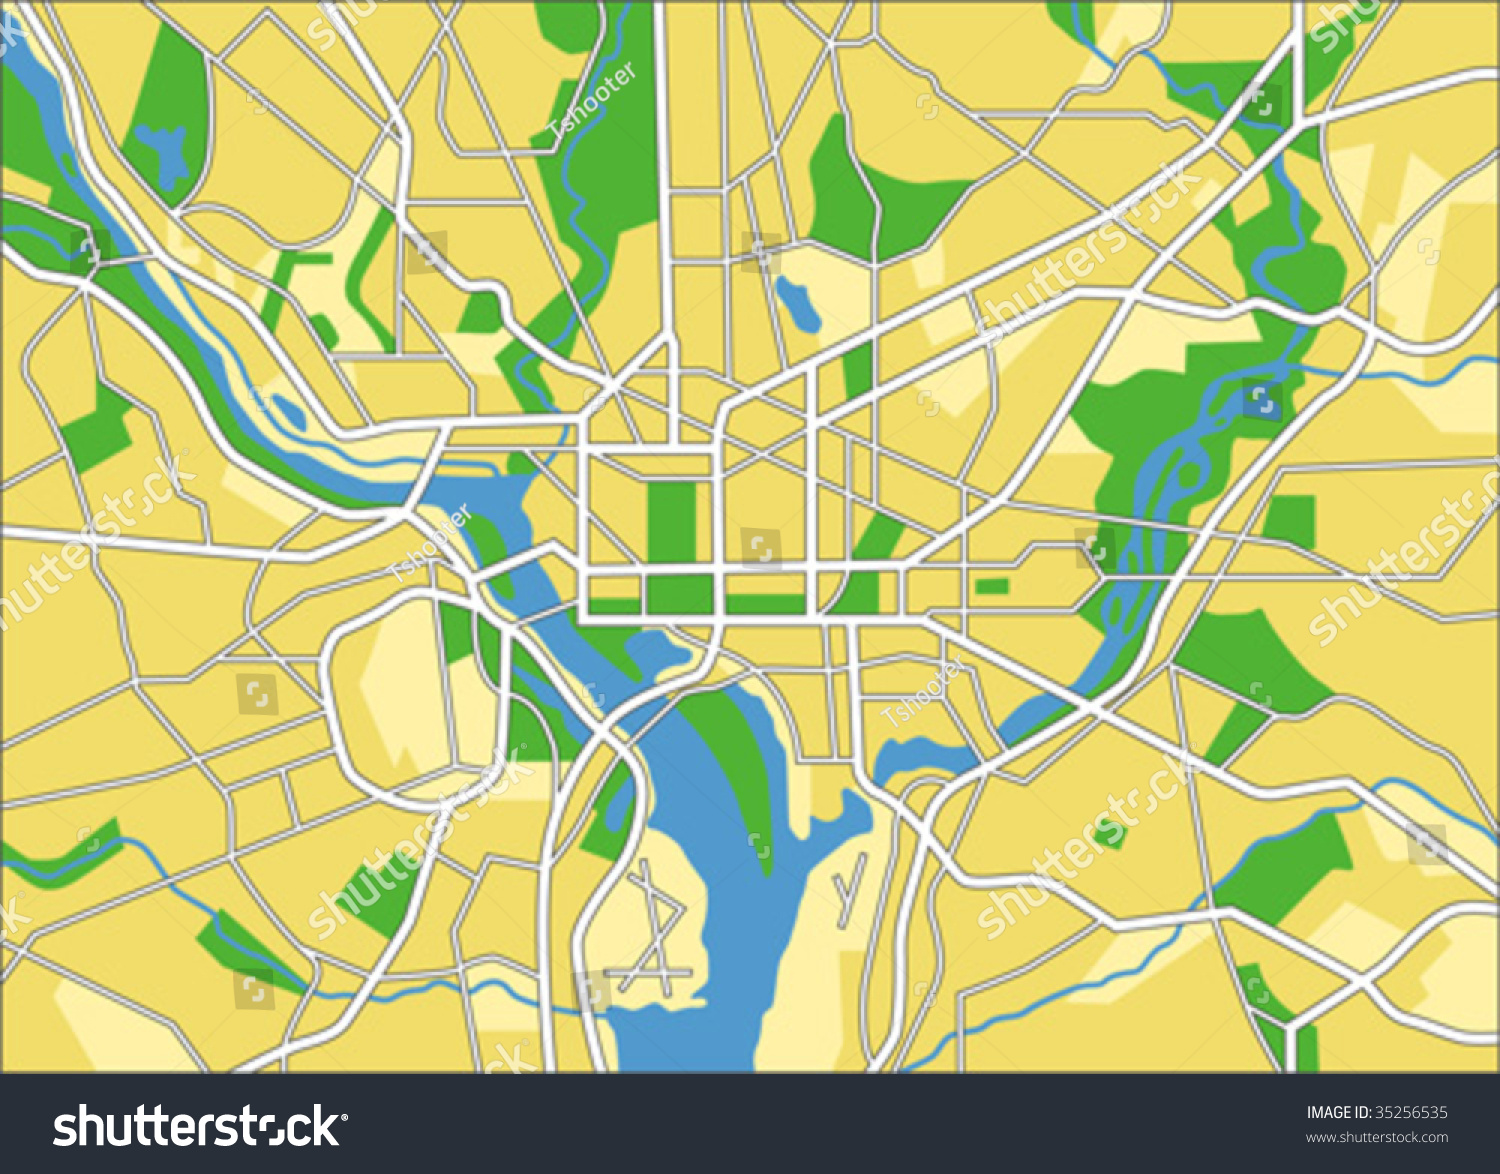 Best Of Diagram Washington Dc Map Download More Maps Diagram - Washington dc map printable